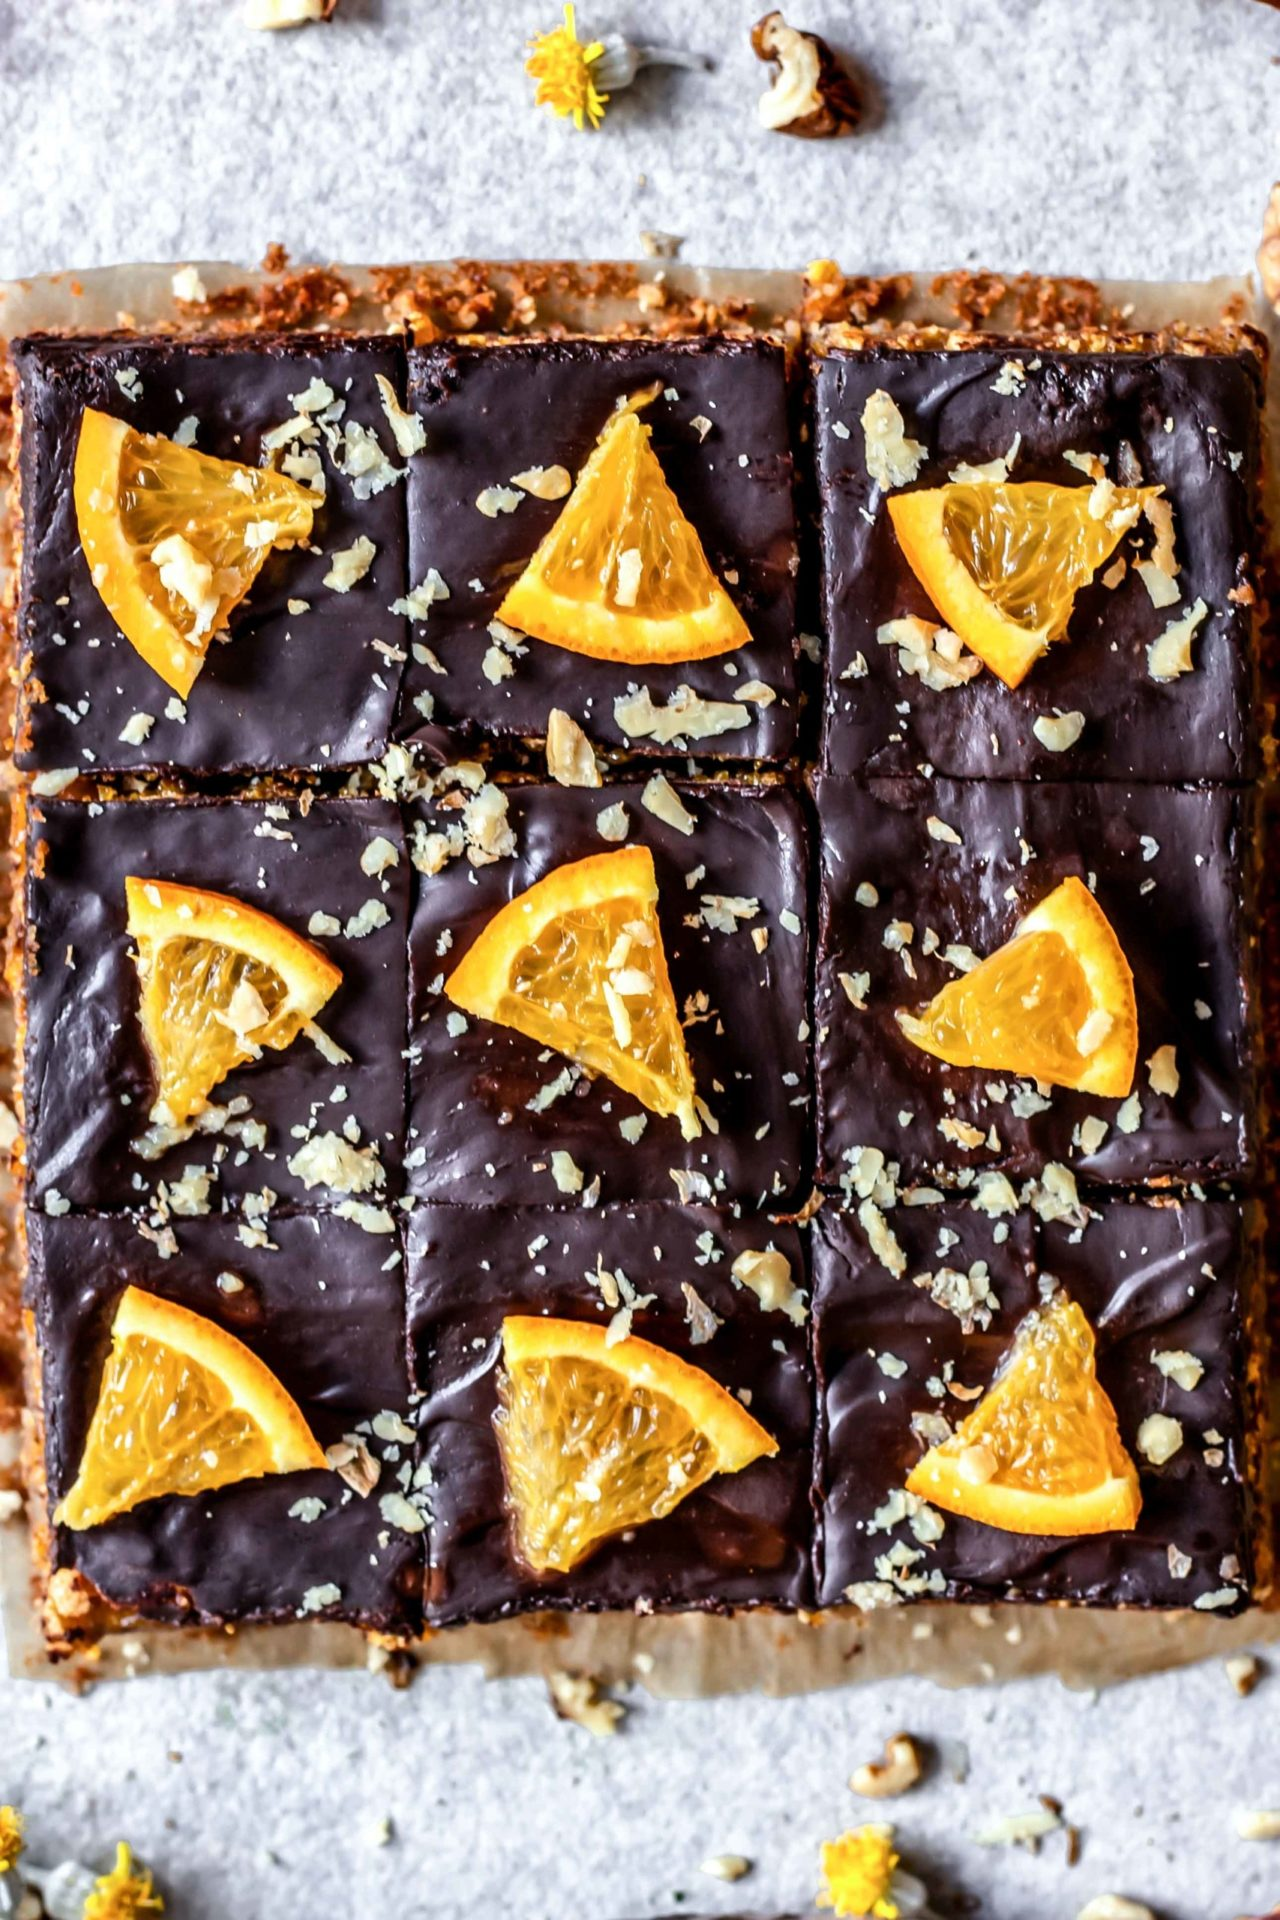 These Chocolate Orange Jaffa Bars are perfectly sweetened, rich, orange infused, chocolaty, portable, super simple to make and so delicious!